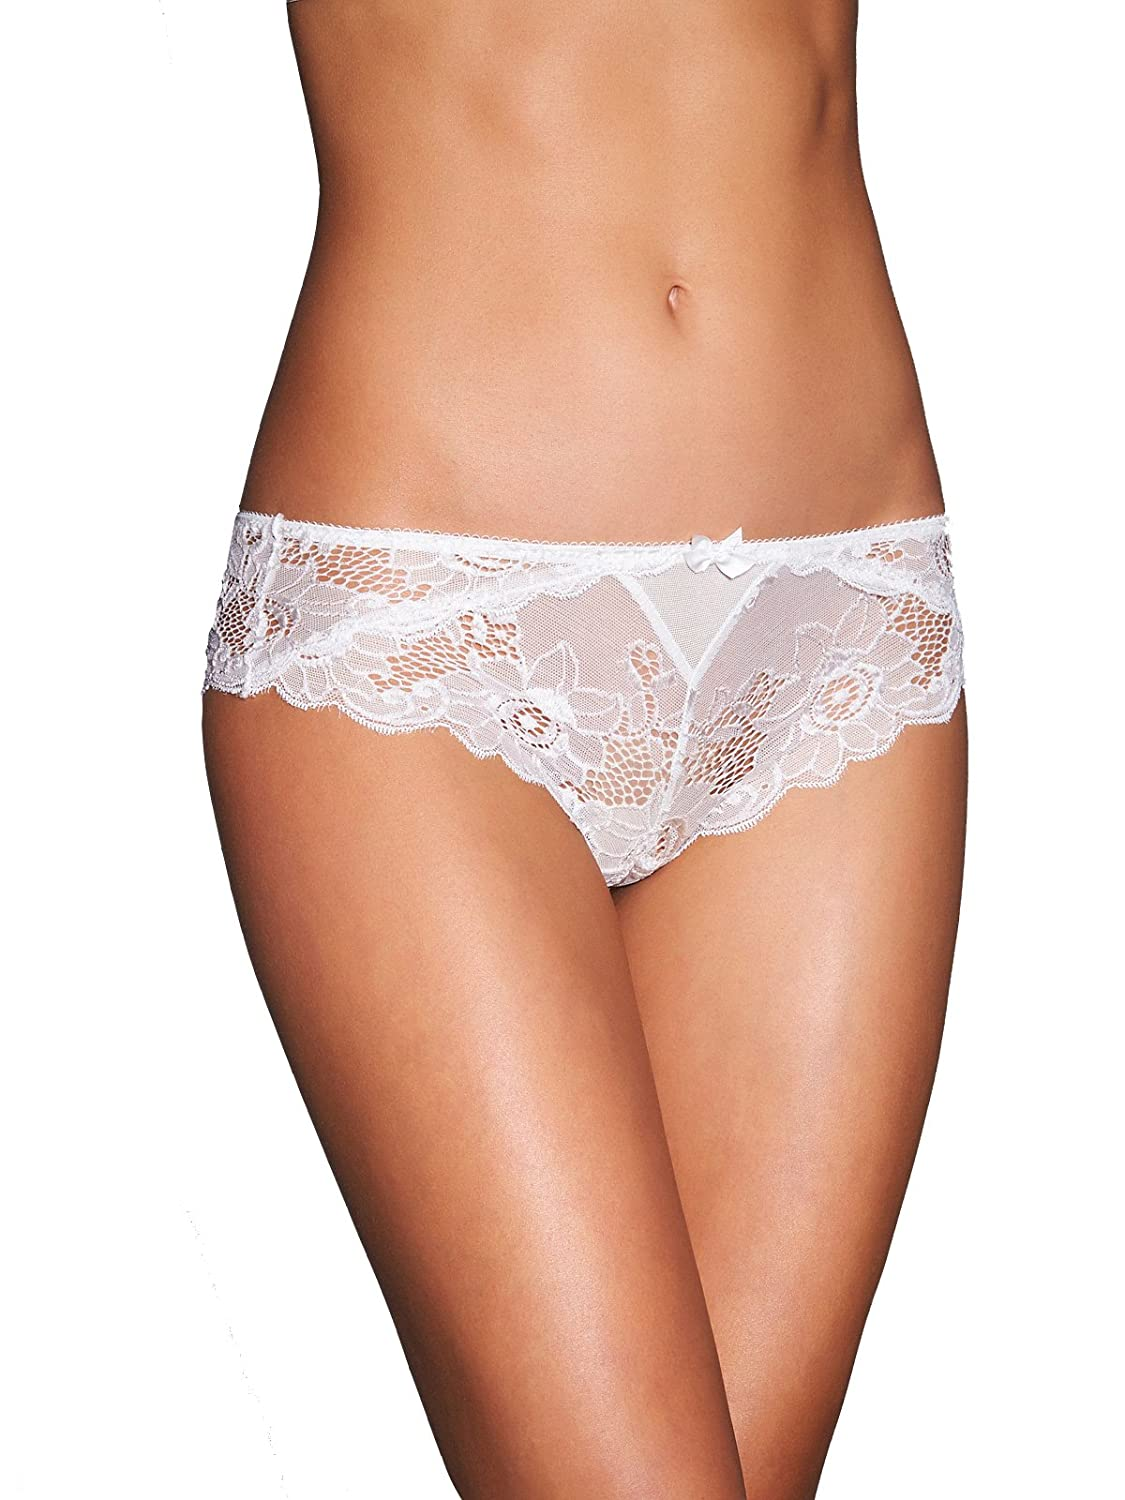 cf0d15bdde61b FLAUNT YOUR FREDERICKS: Since 1946, Frederick\'s of Hollywood have been  providing women everywhere with innovative and confidence boosting lingerie  of the ...